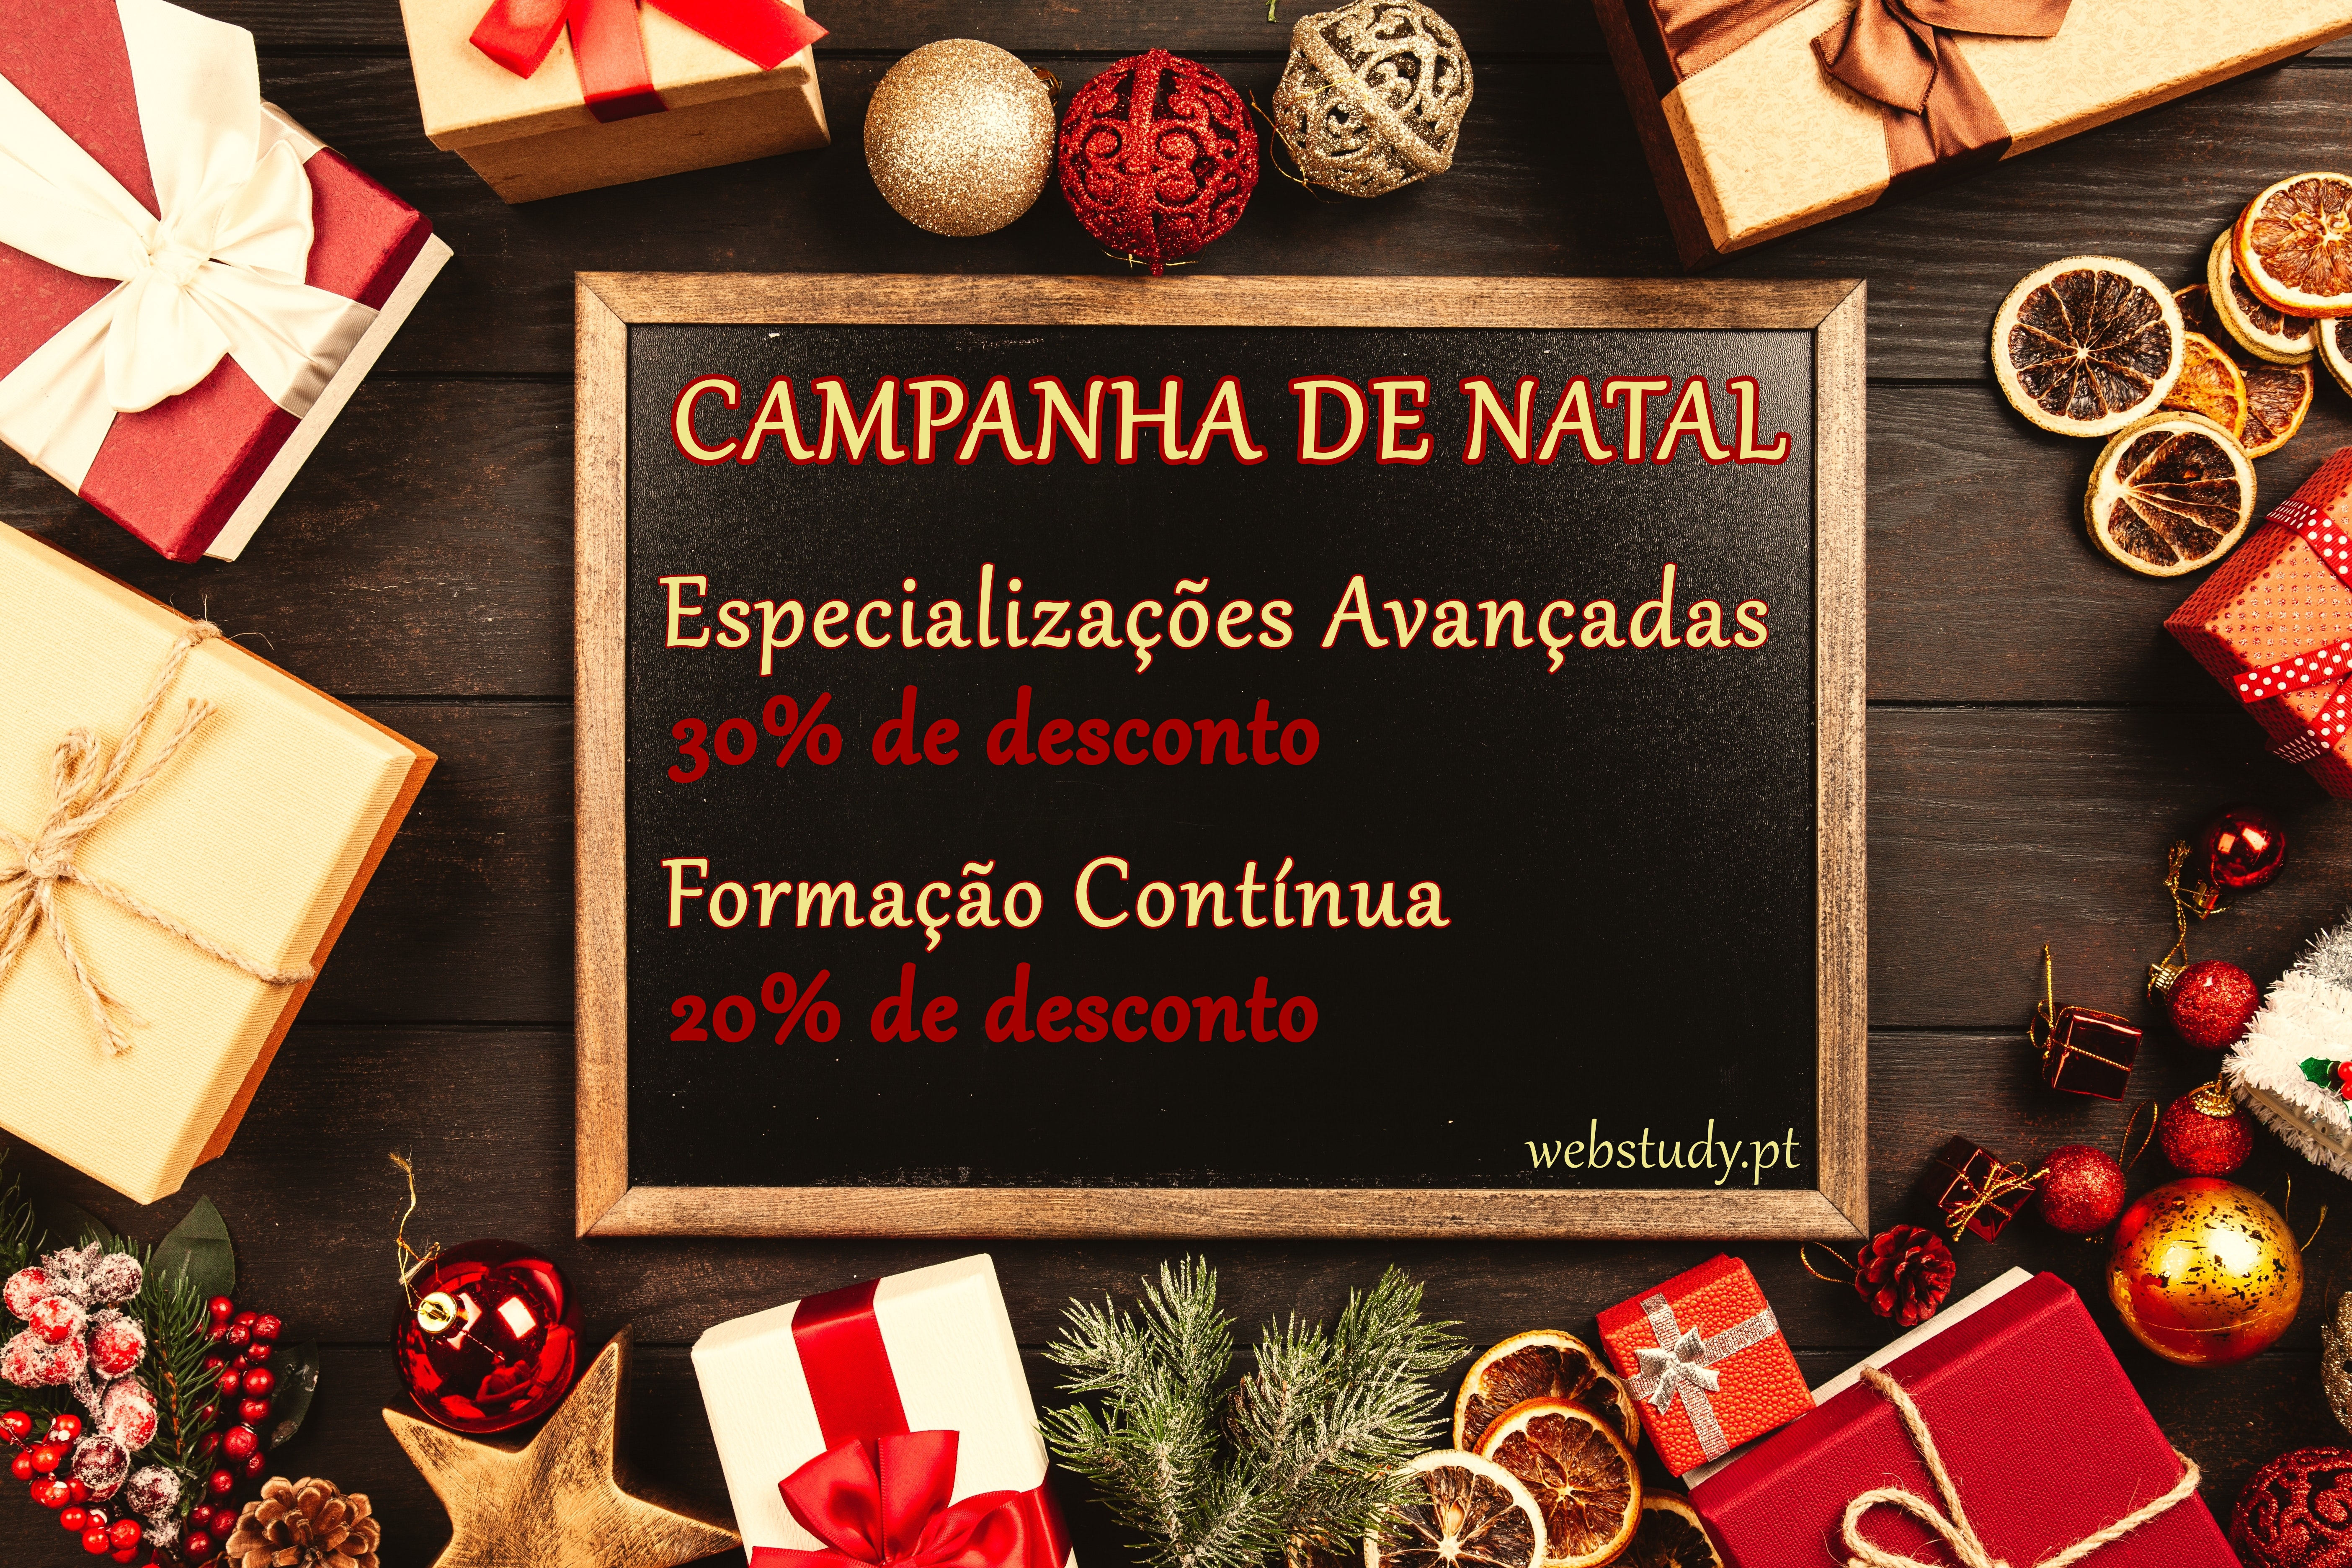 Attachment Campanha Natal 2018.jpg